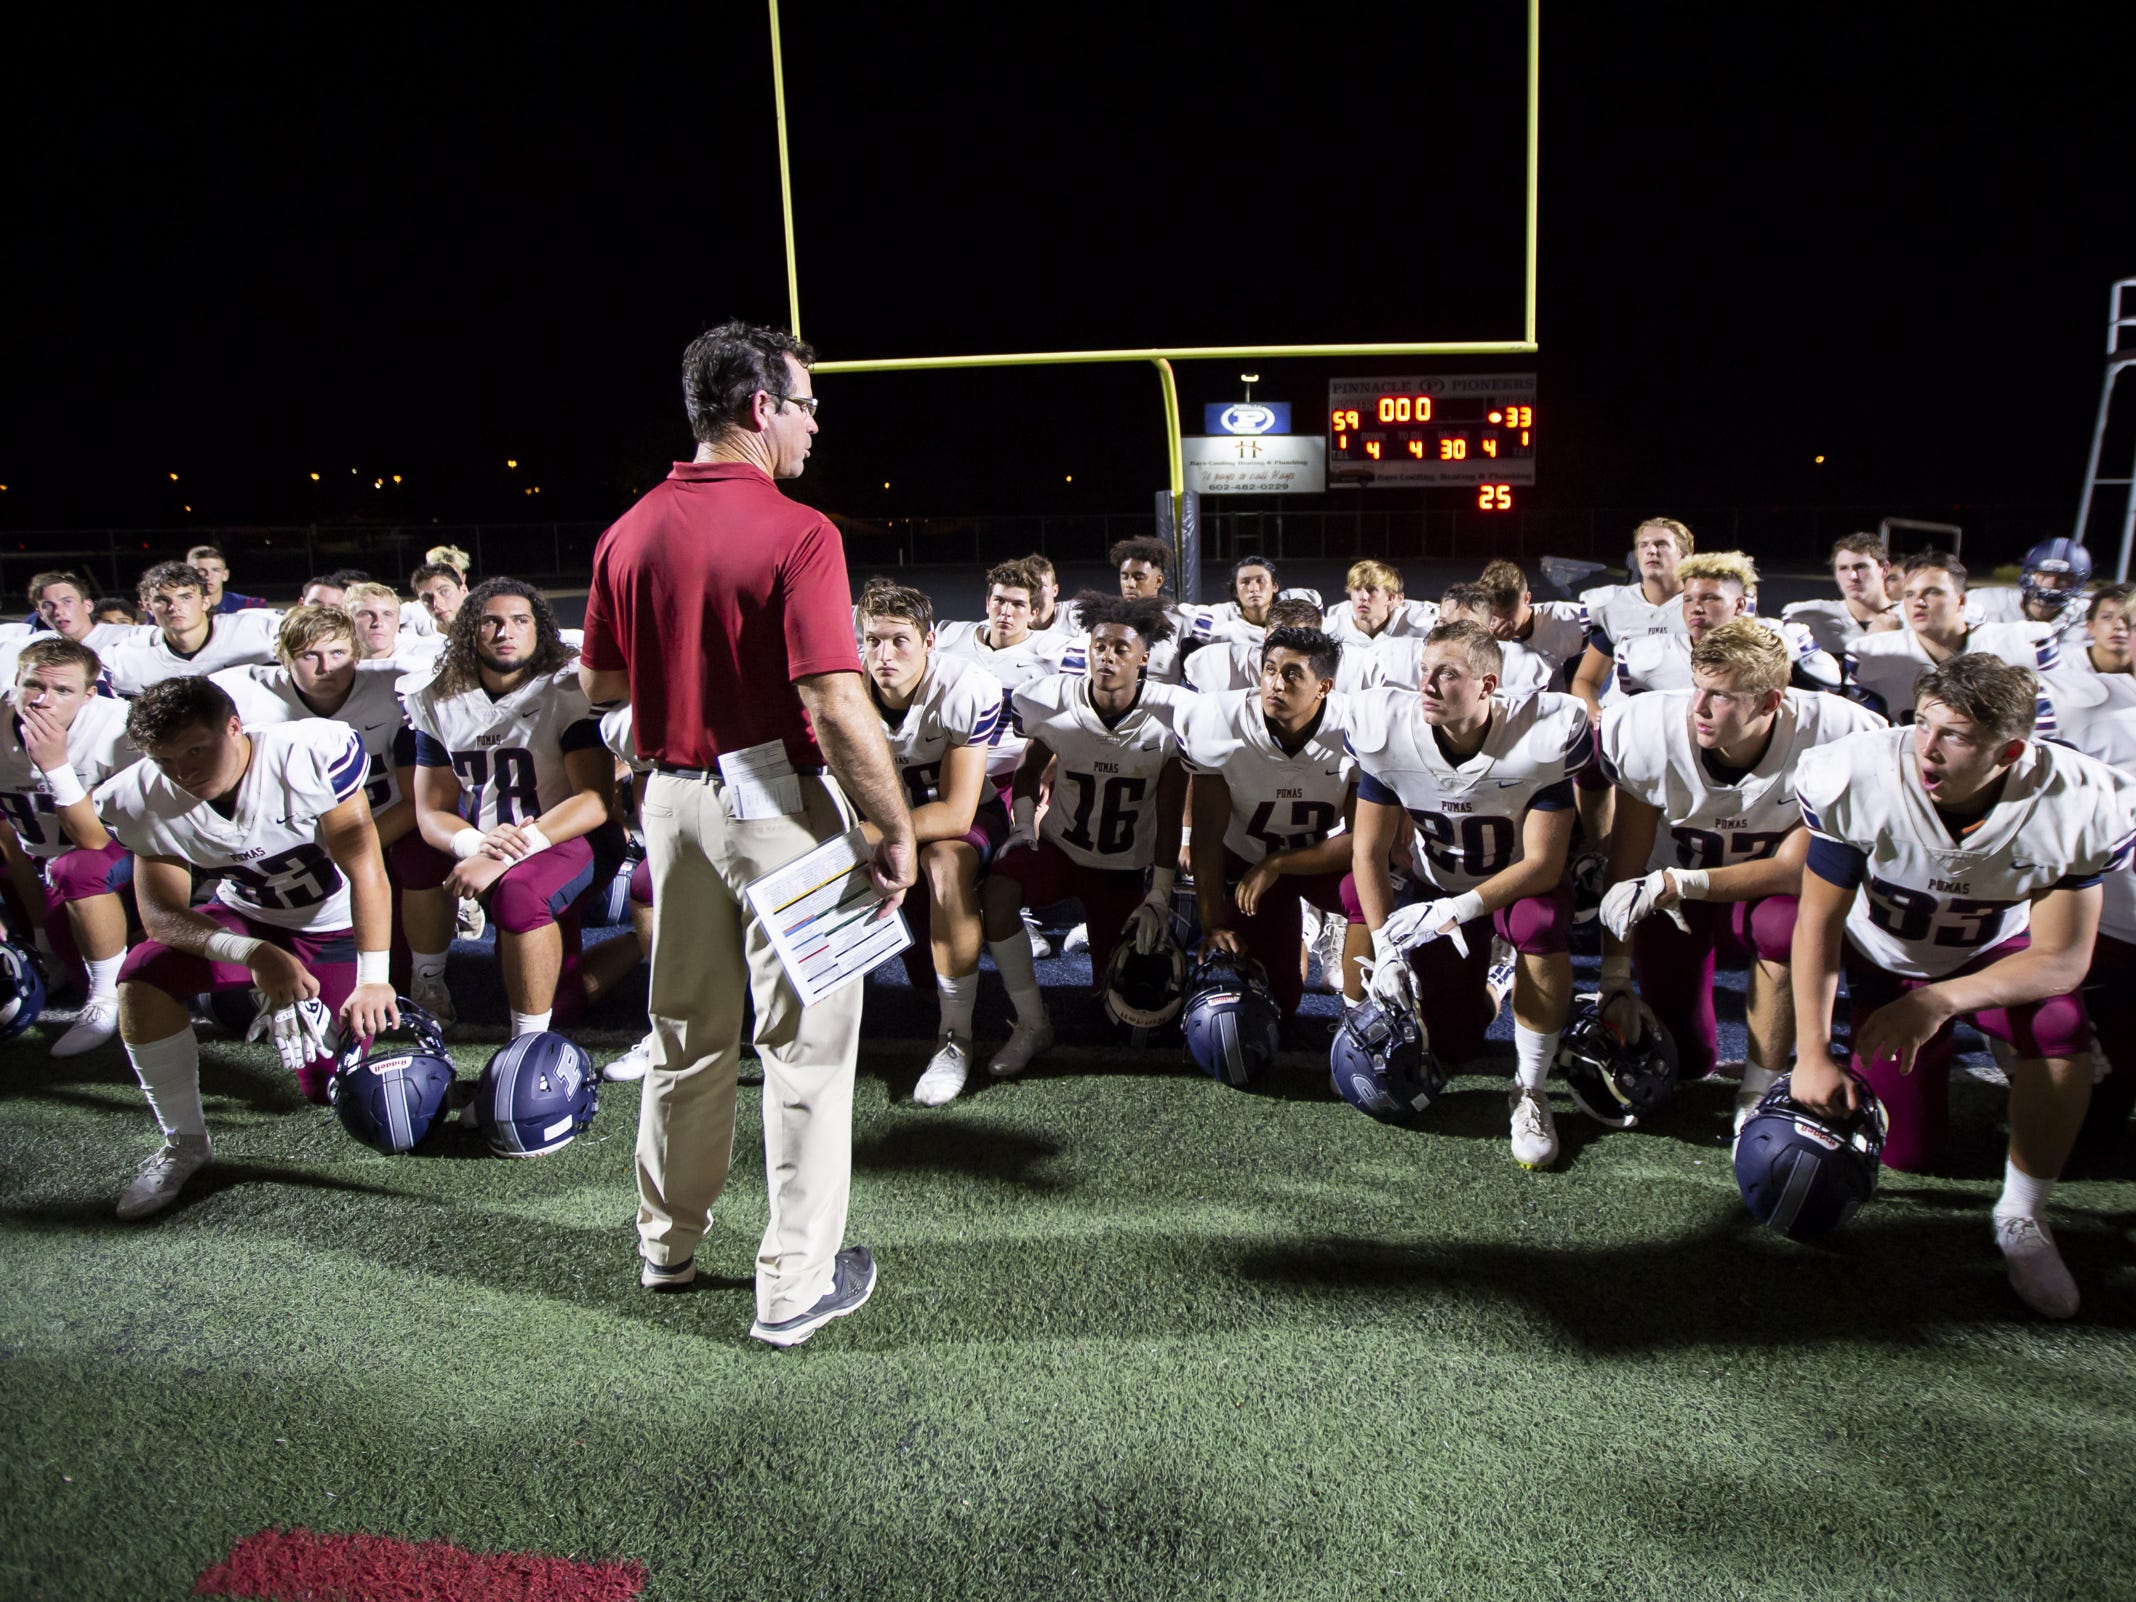 Head coach Preston Jones of the Perry Pumas speaks following Perry's loss against the Pinnacle Pioneers at Pinnacle High School on Friday, August 17, 2018 in Phoenix, Arizona.